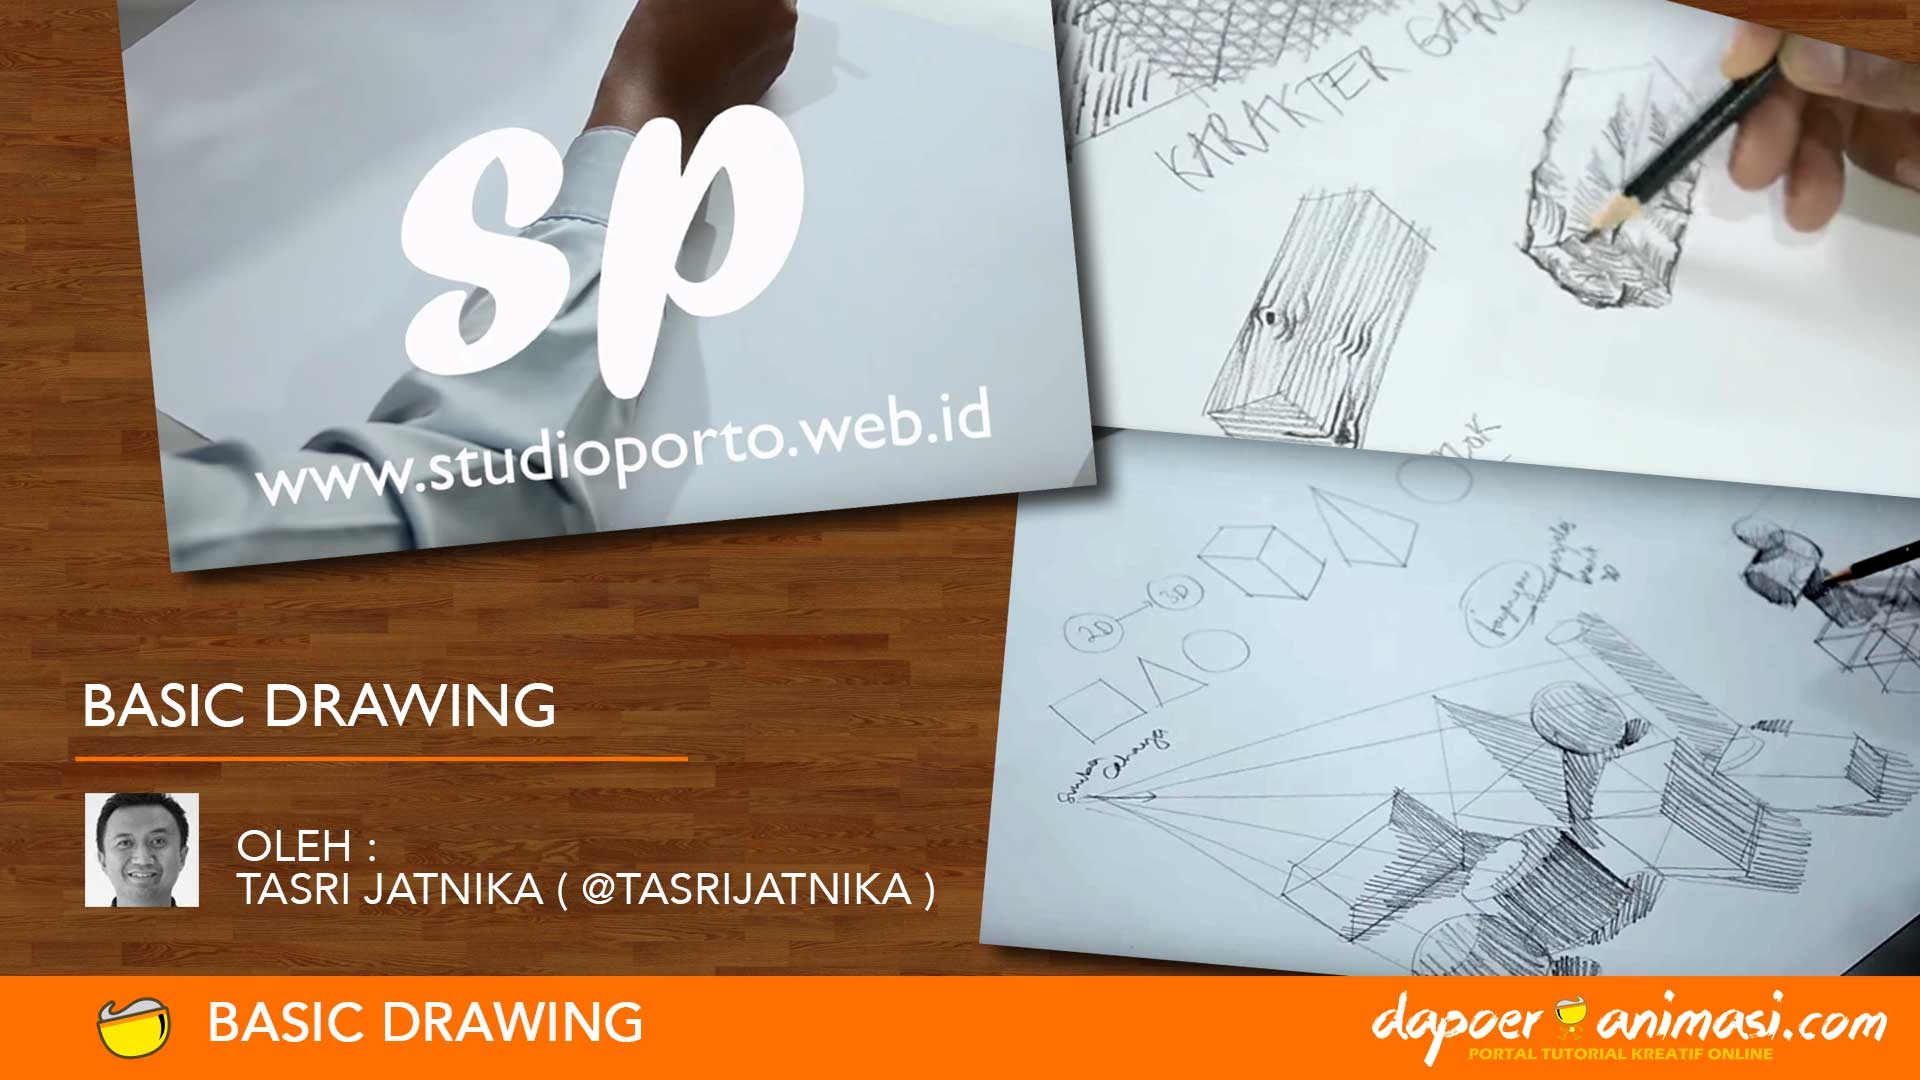 Dapoer Animasi & Studio Porto : Basic Drawing